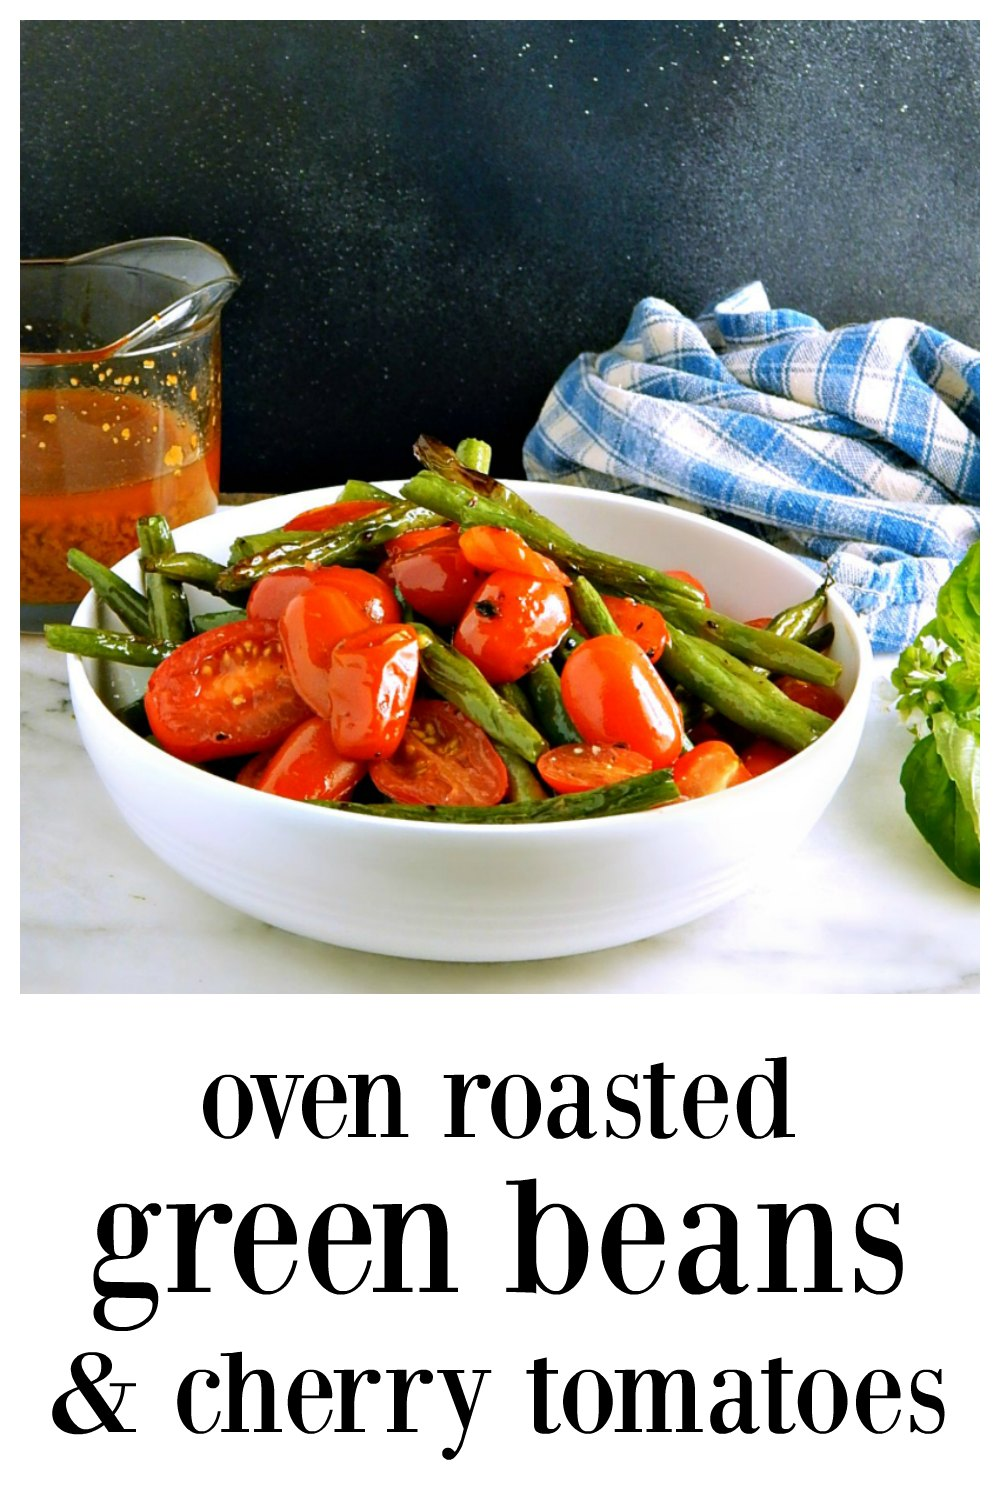 Oven Roasted Green Beans & Cherry Tomatoes are so simple, so easy and so delish! They form their own dressing right on the pan! Just Drizzlel with Balsamic when they come out of the oven #OvenRoastedGreenBeansTomatoes #SheetTrayGreenBeansTomatoes #OvenRoastedGreenBeansCherryTomatoes #SheetTrayGreenBeansCherryTomatoes